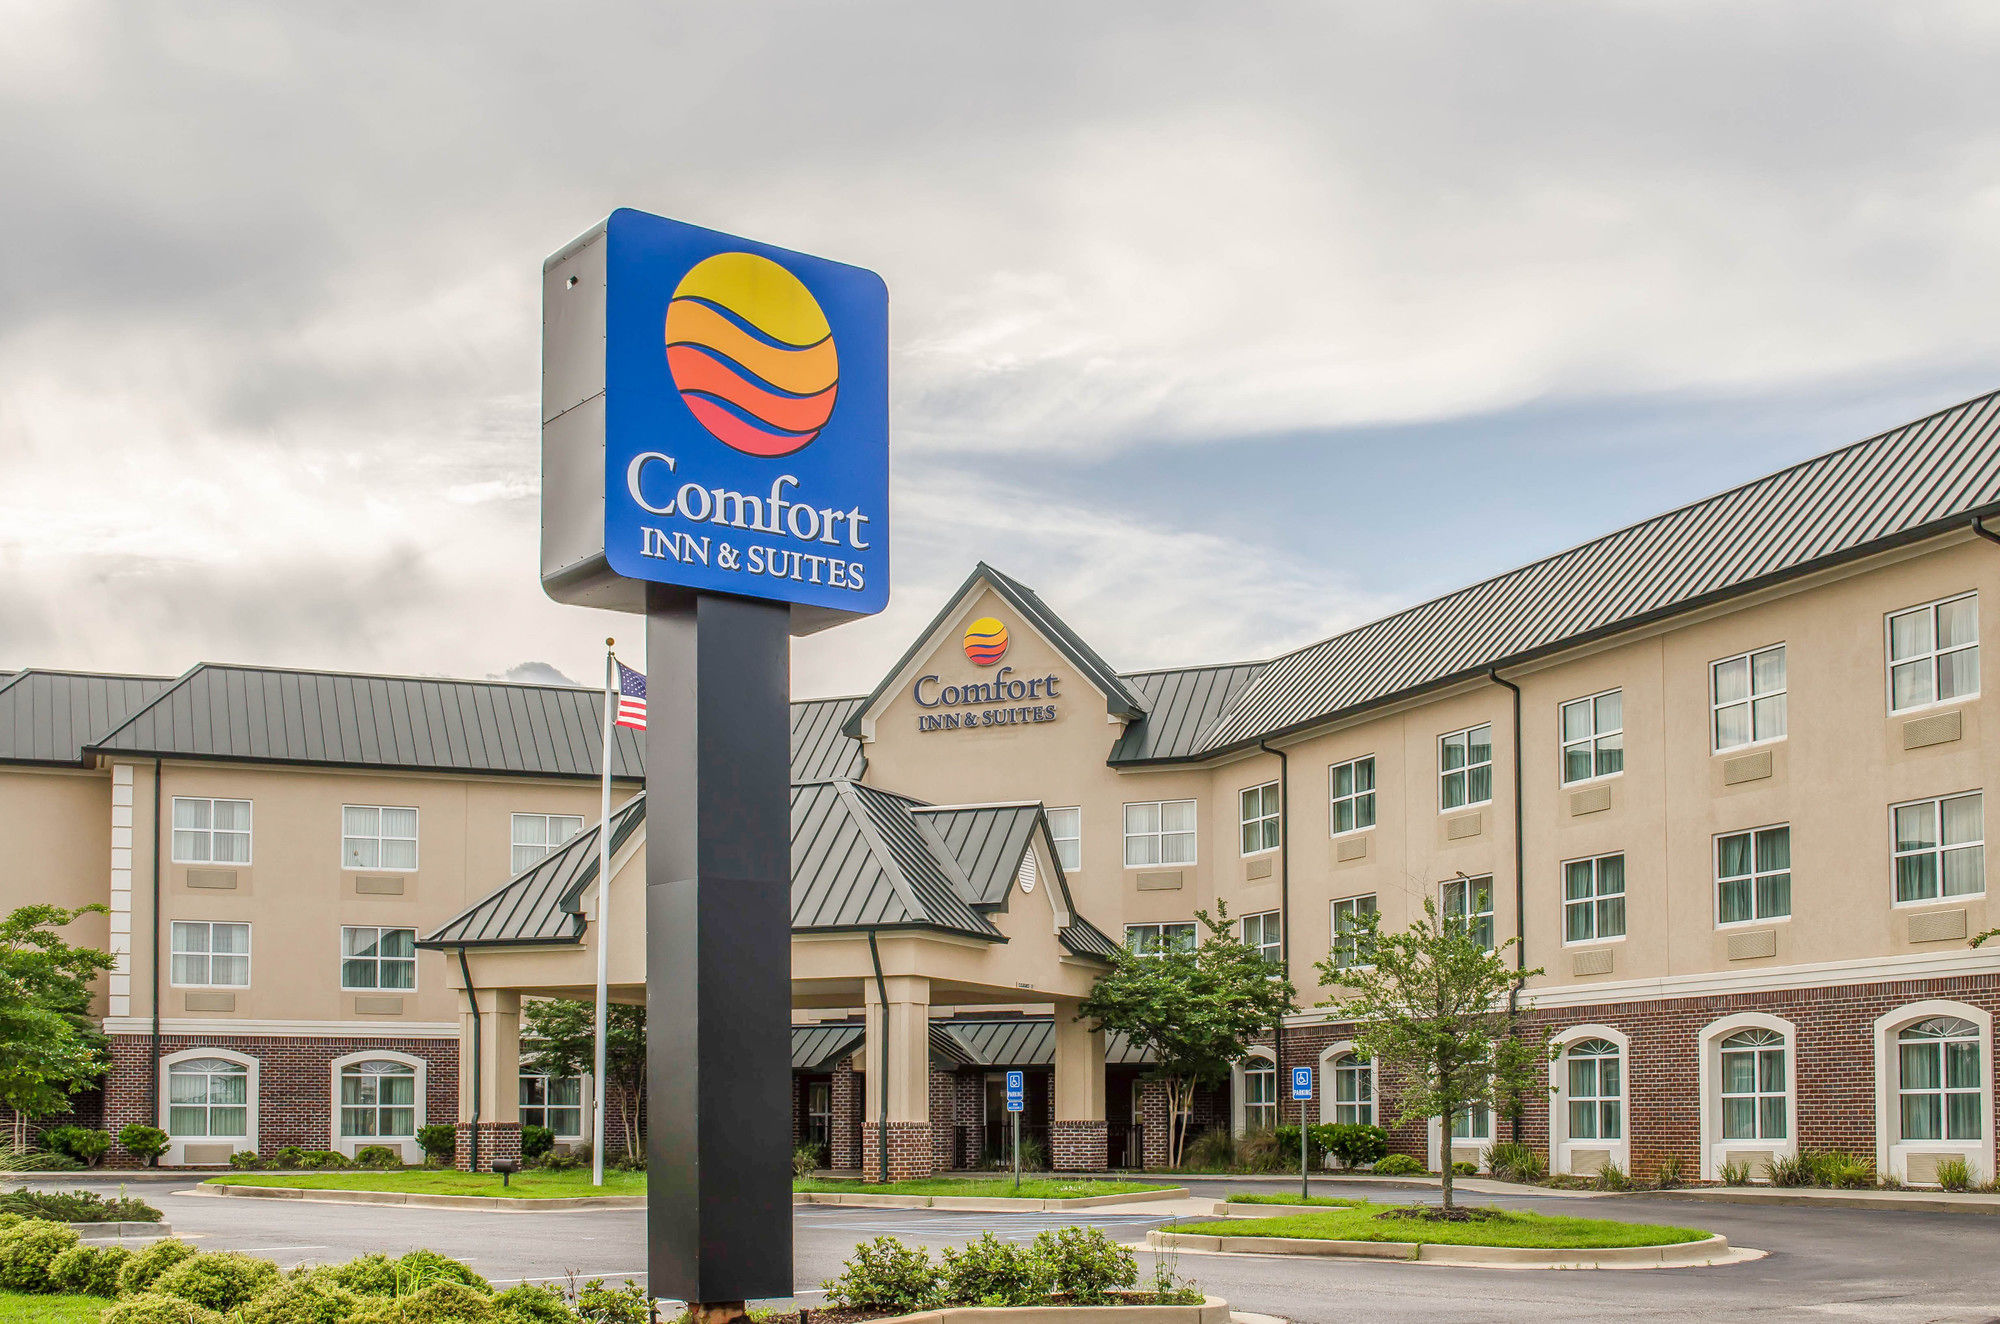 Comfort Inn & Suites in Daphne, AL